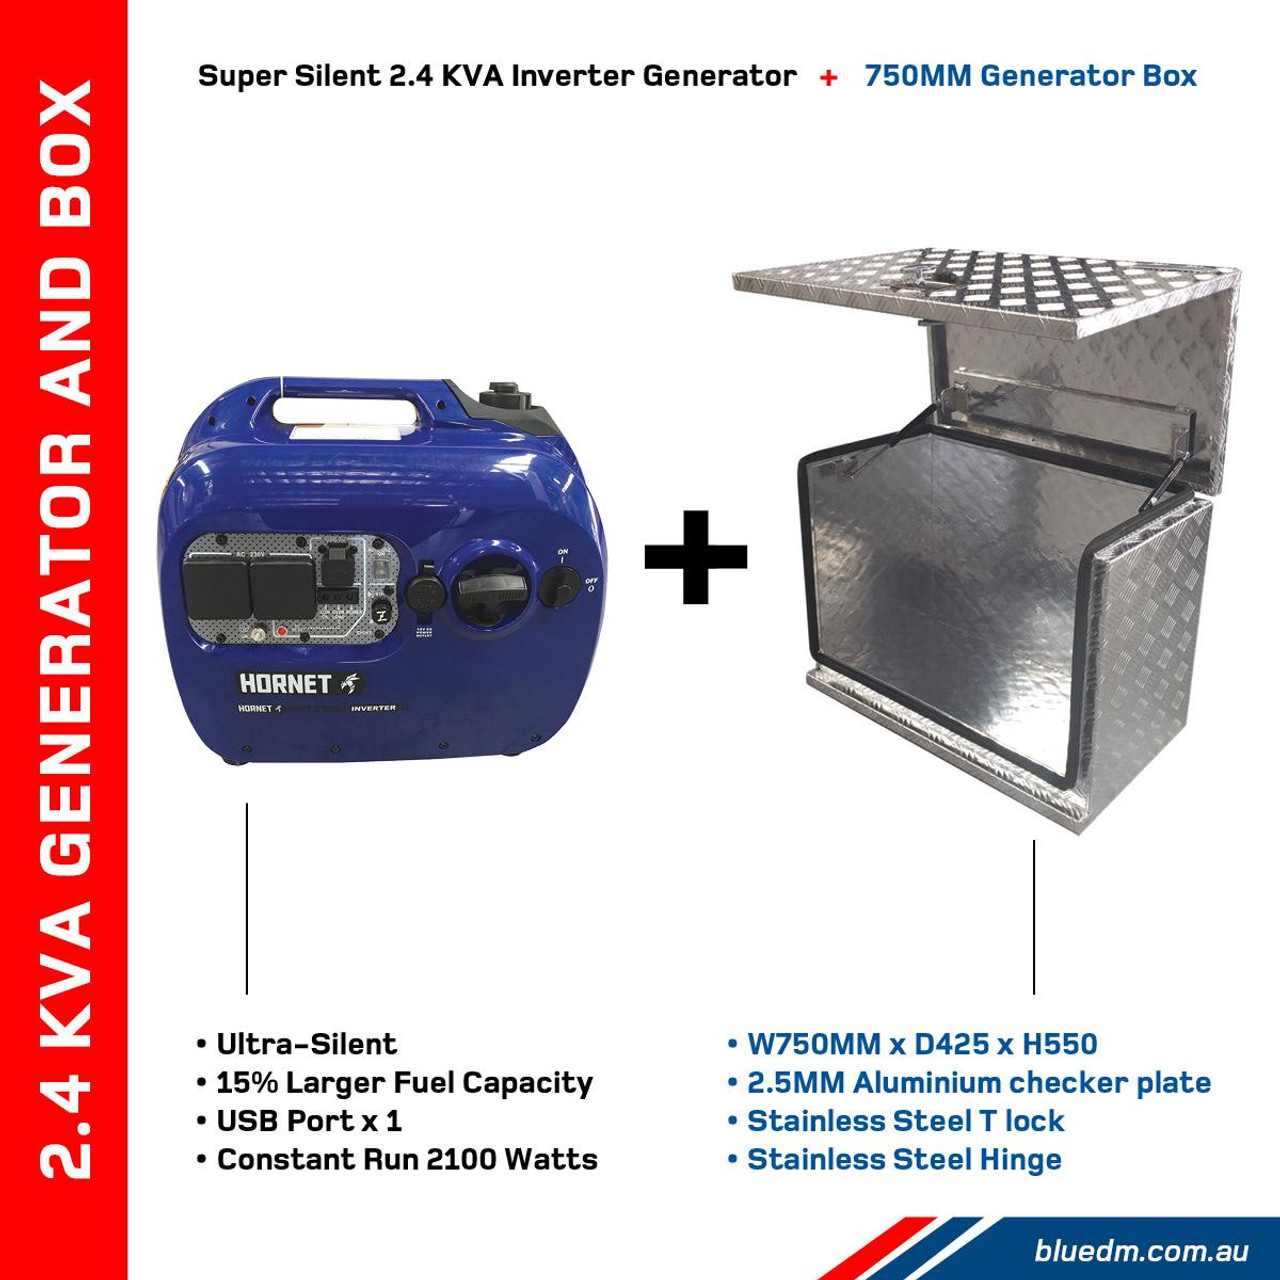 2.4KVA Inverter Generator Perfect for Camping, Outdoor Activities and Home Use